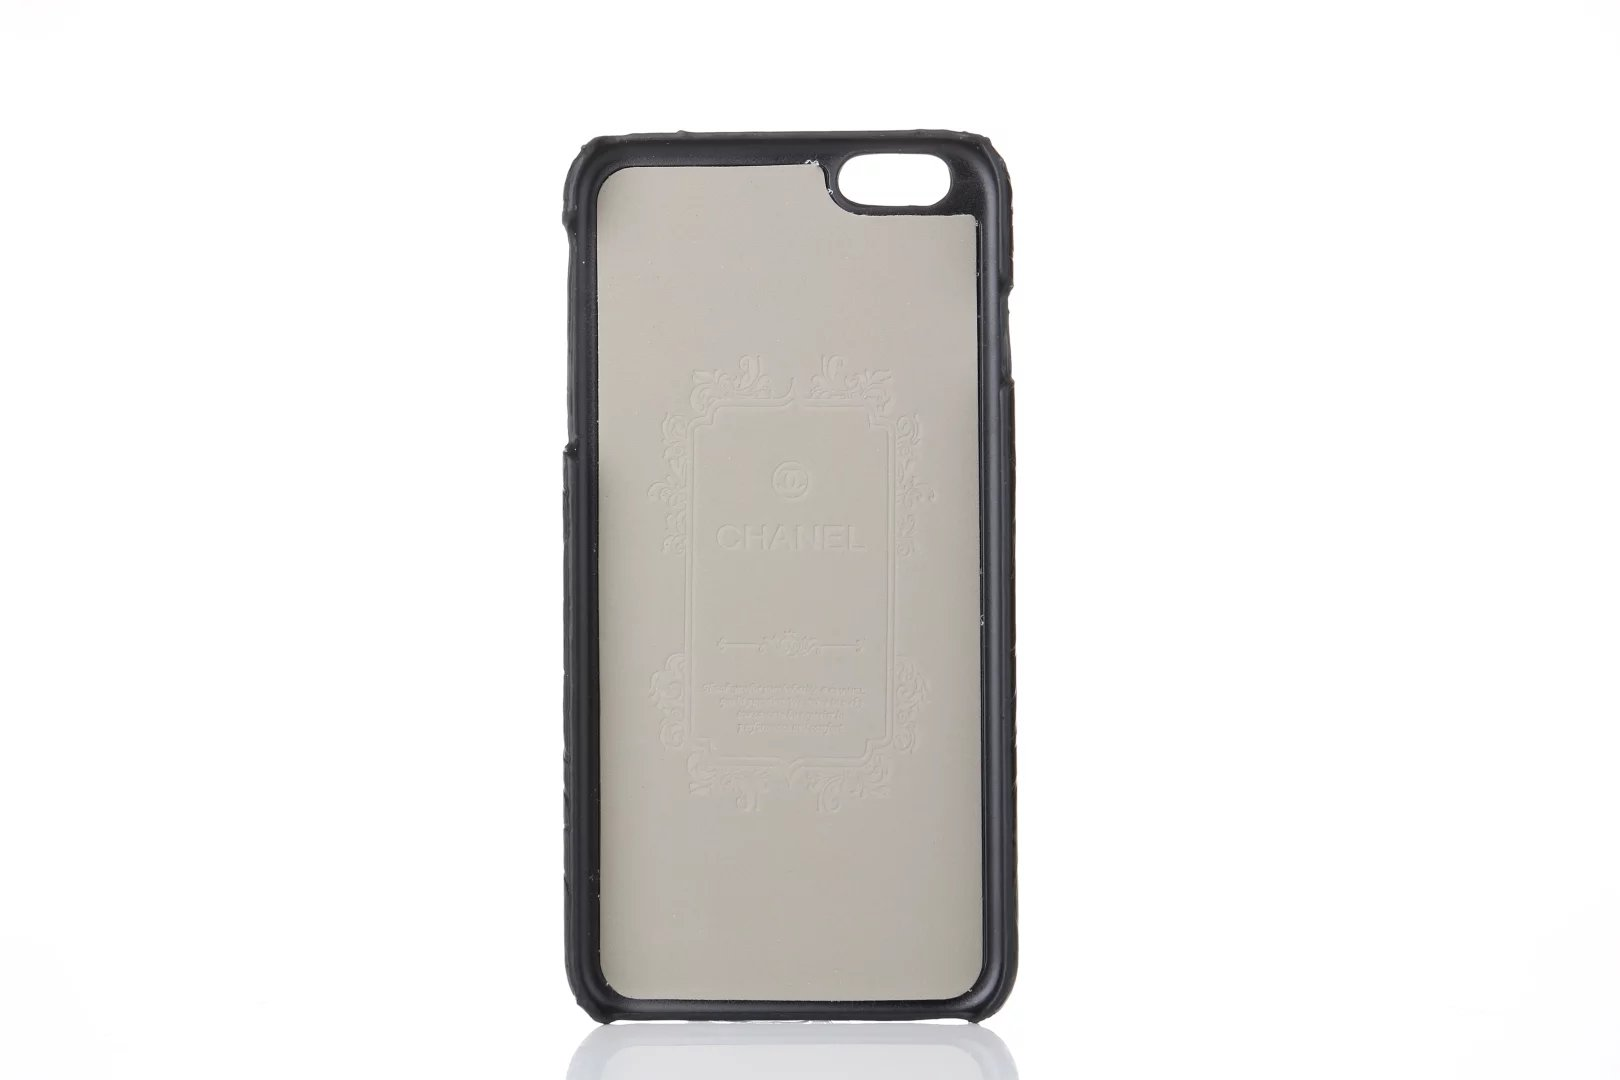 iphone 6 covers and cases iphone 6 covers uk fashion iphone6 case create cell phone case iphone cases popular design your own iphone 6 case ipod 6 case designer iphone 6 rumors 2016 i 6 phone covers